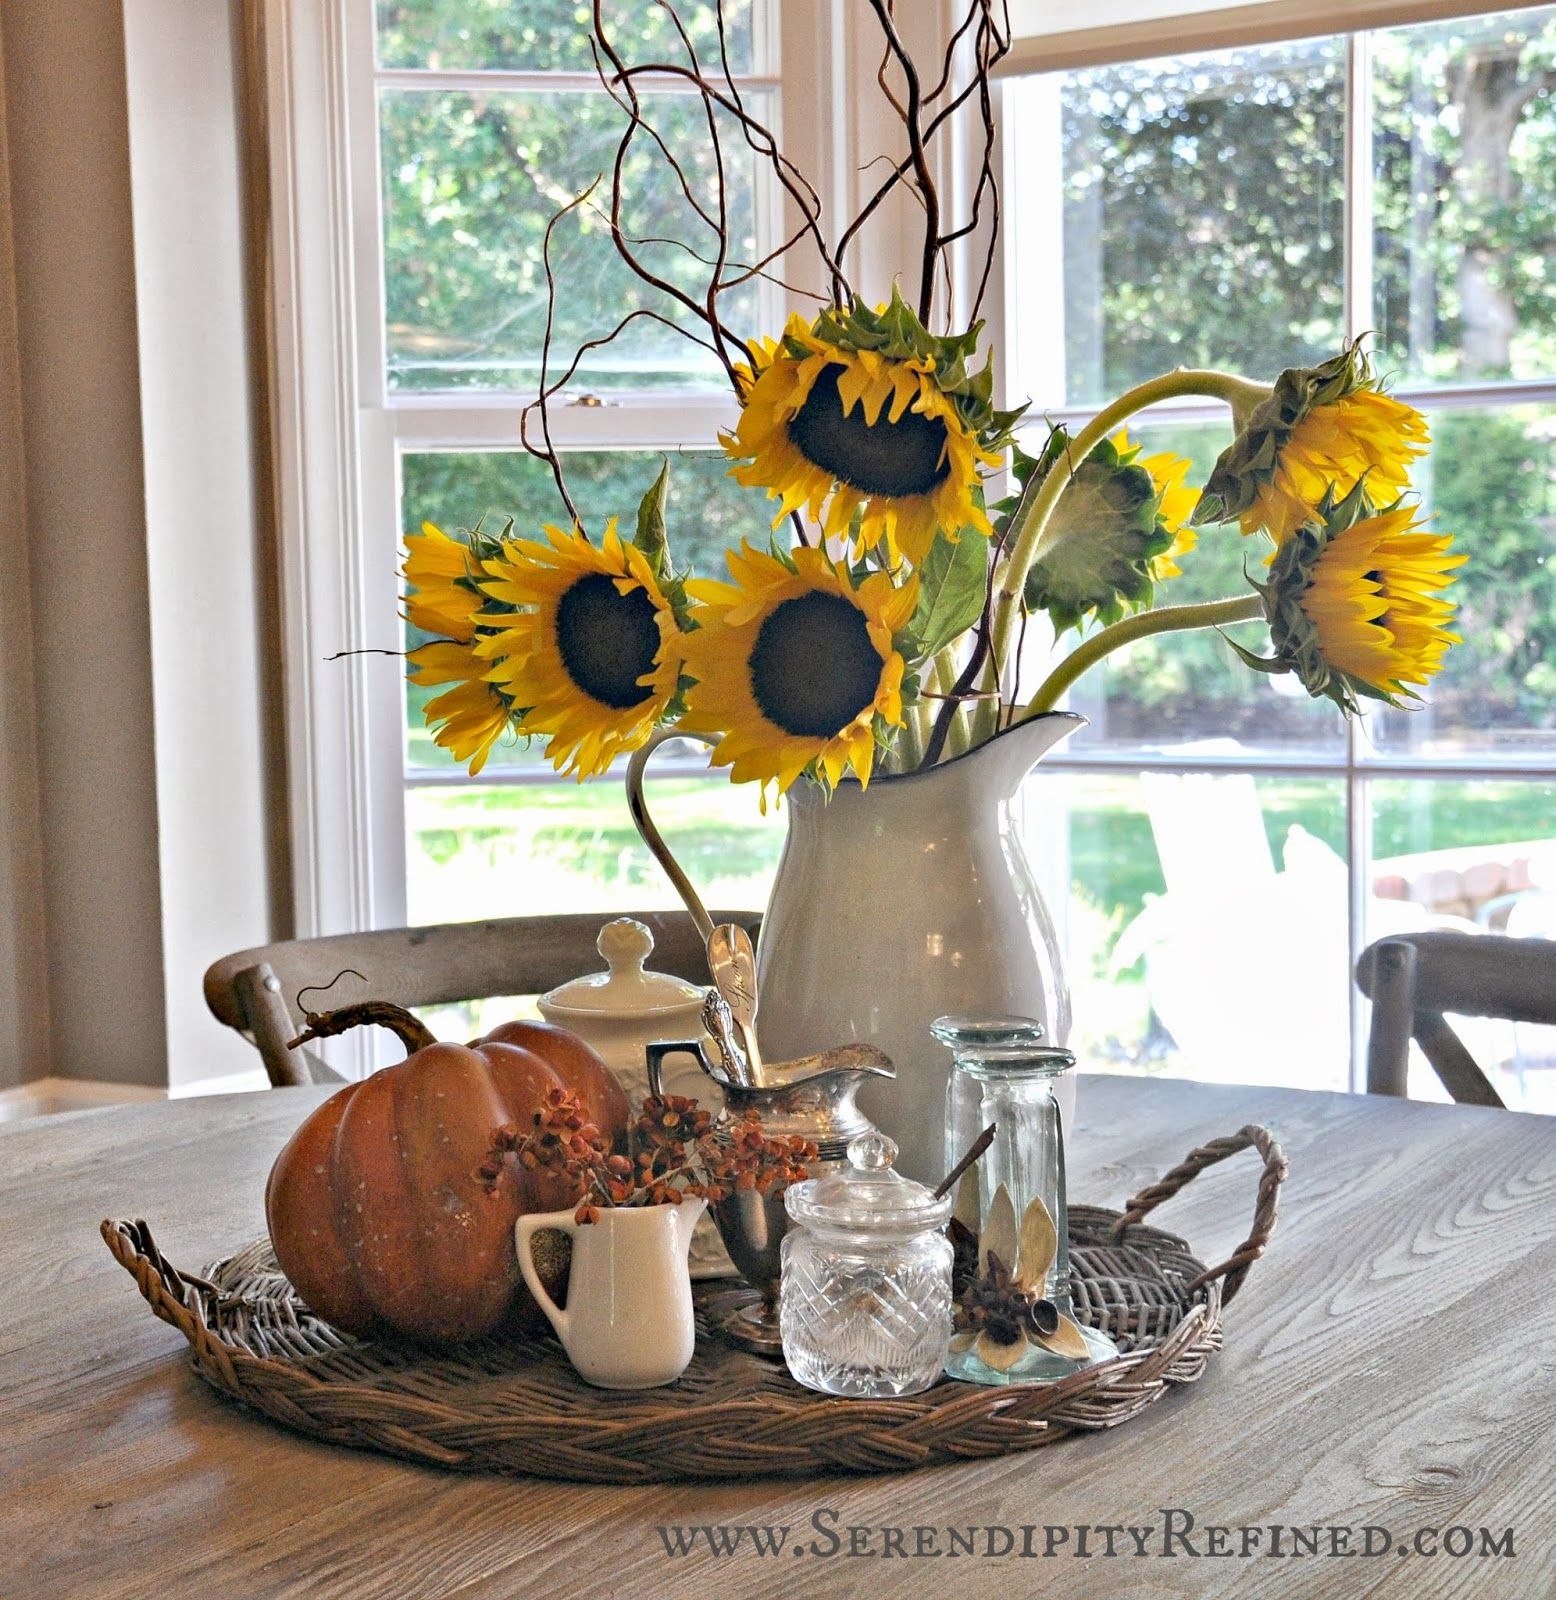 Fall French Farmhouse Decorating Sunflowers Bittersweet Pumpkins 1 Jpg 1 556 1 600 Pixels Fall Kitchen Decor Autumn Decorating Farmhouse Fall Decor